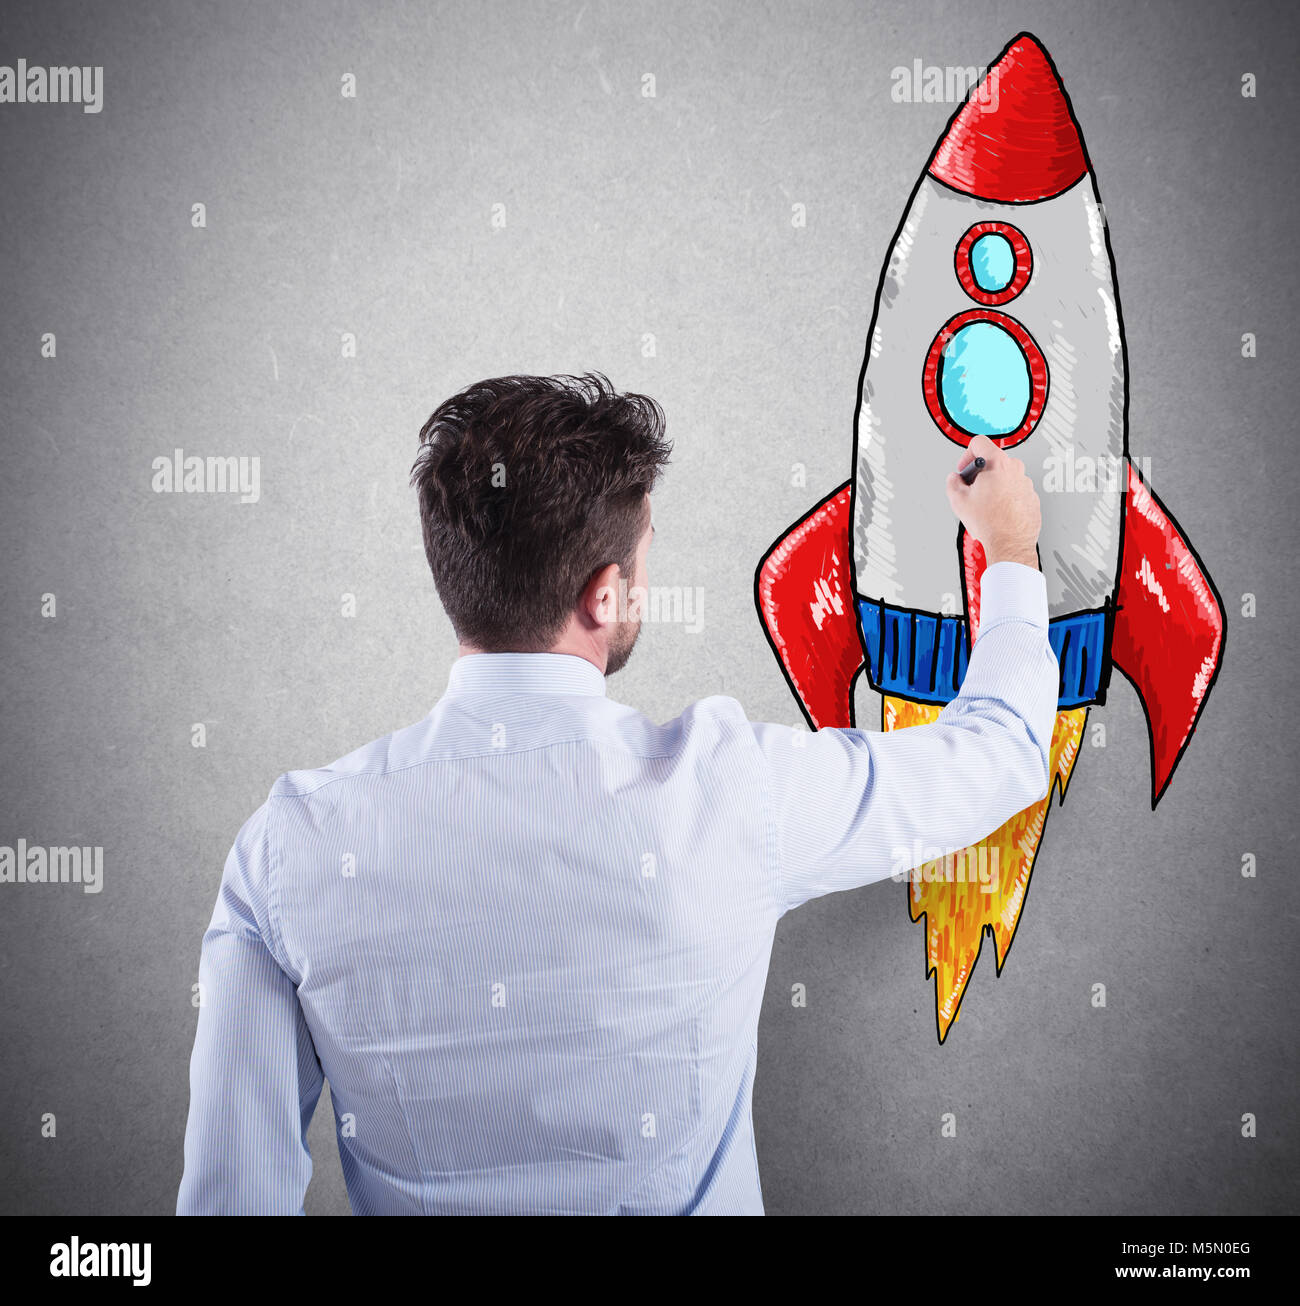 Businessman drawing a rocket. Concept of business improvement and enterprise startup - Stock Image